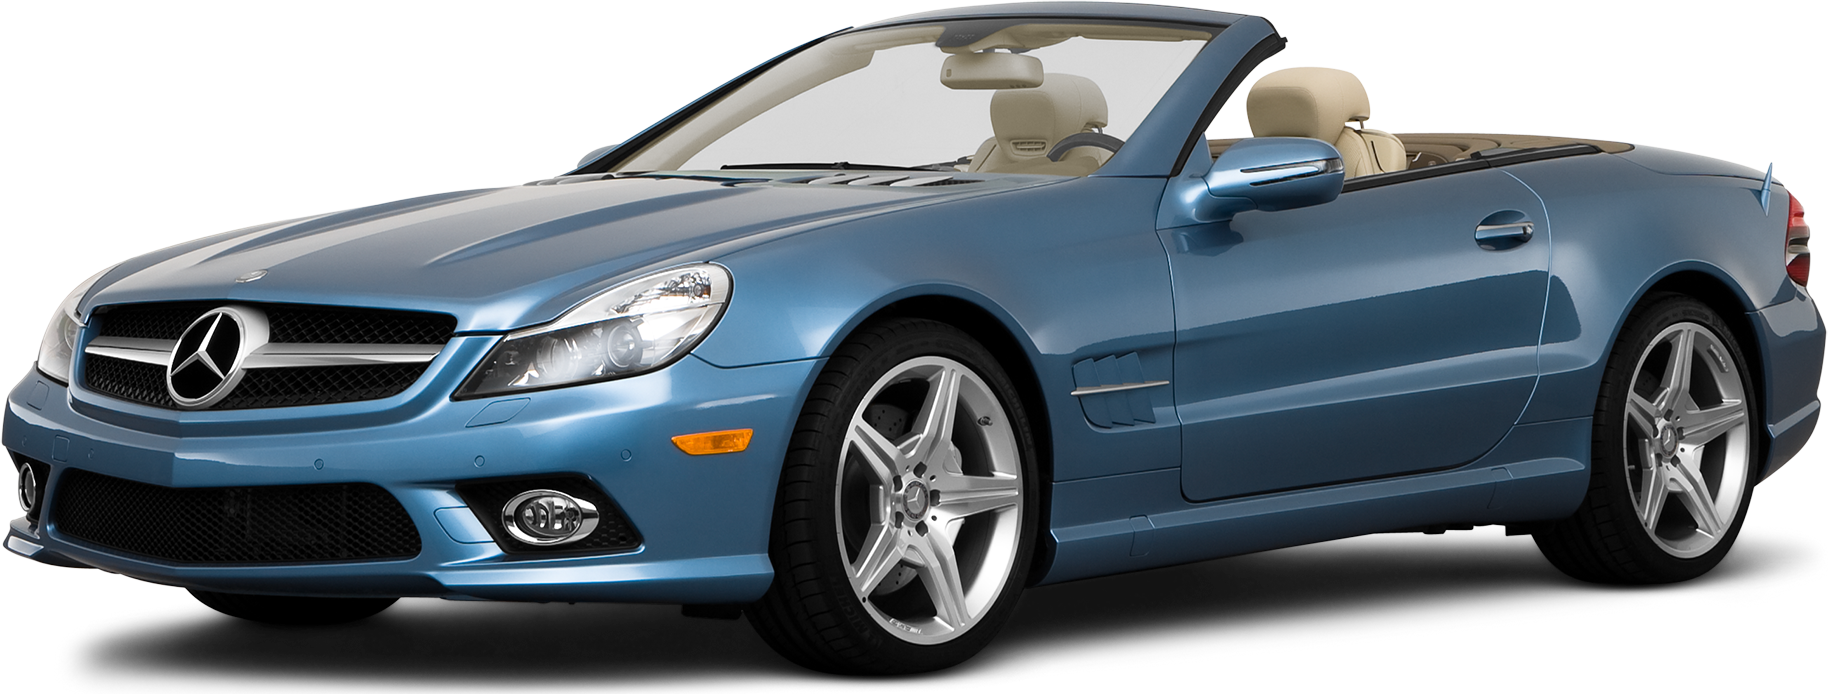 2011 Mercedes-Benz E-Class   Pricing, Ratings, Expert Review